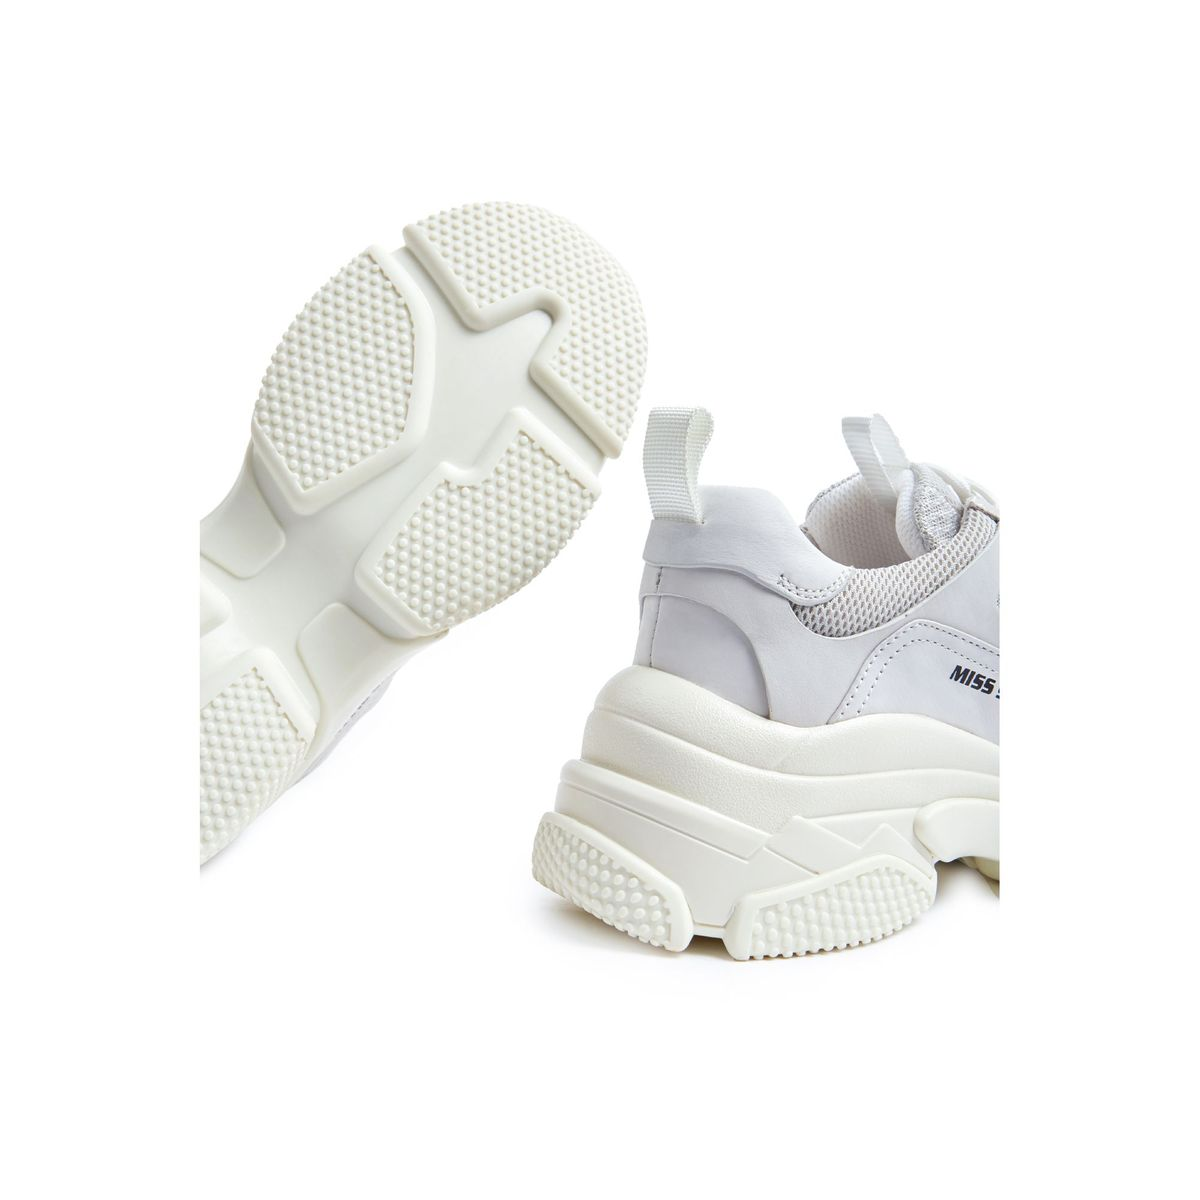 White sneakers with high sole 2803 Ave. Loft